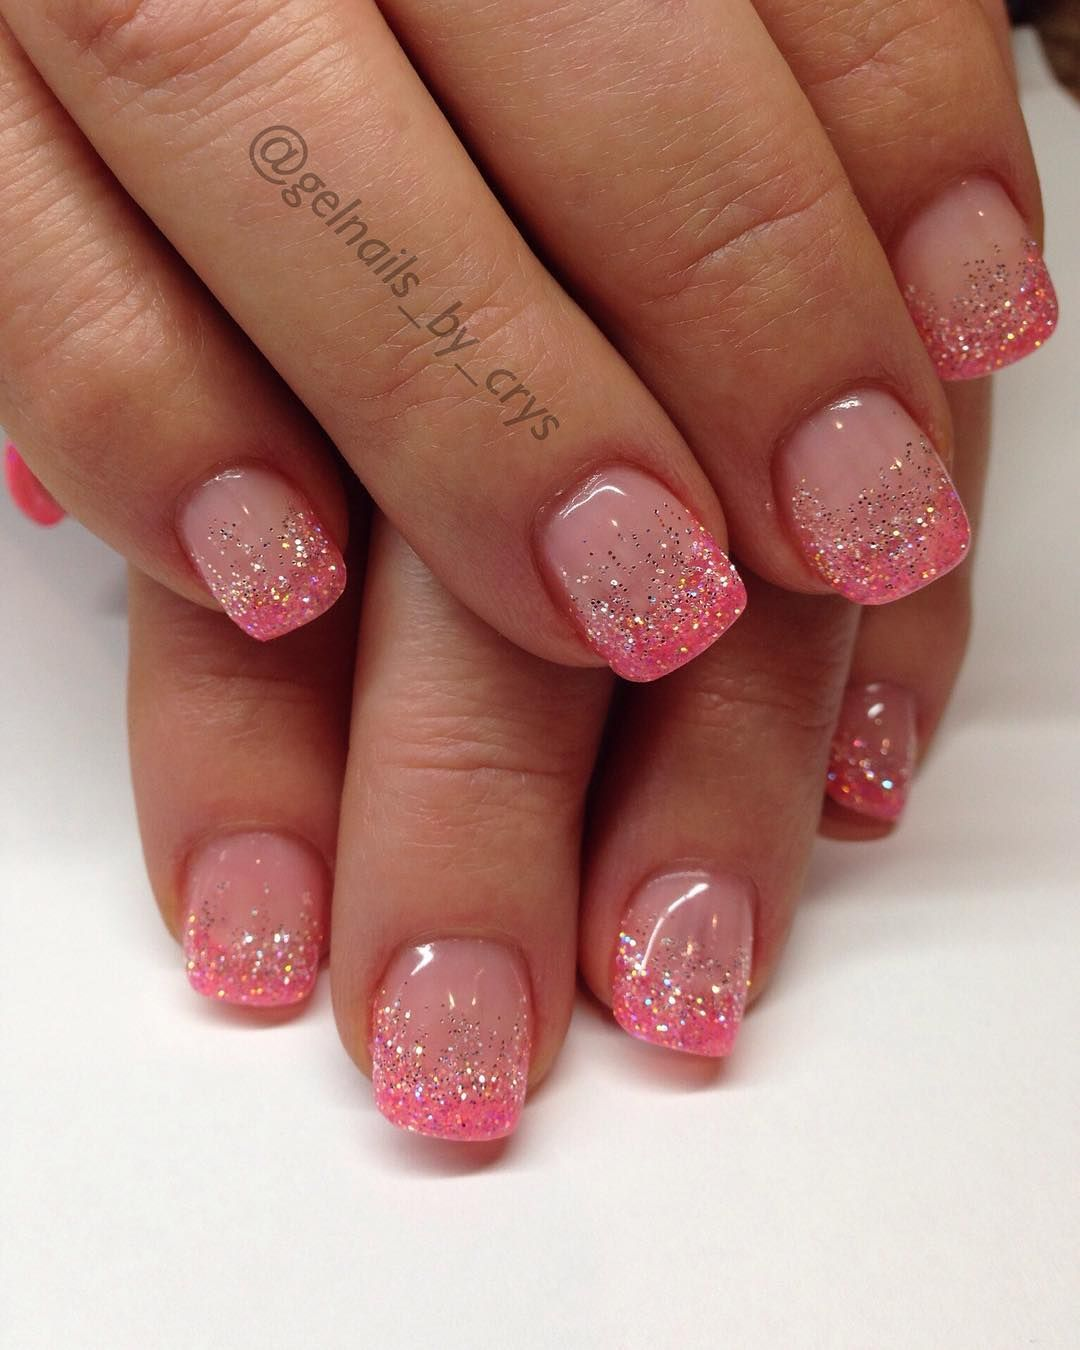 gelnails_by_crys - Fuzion \